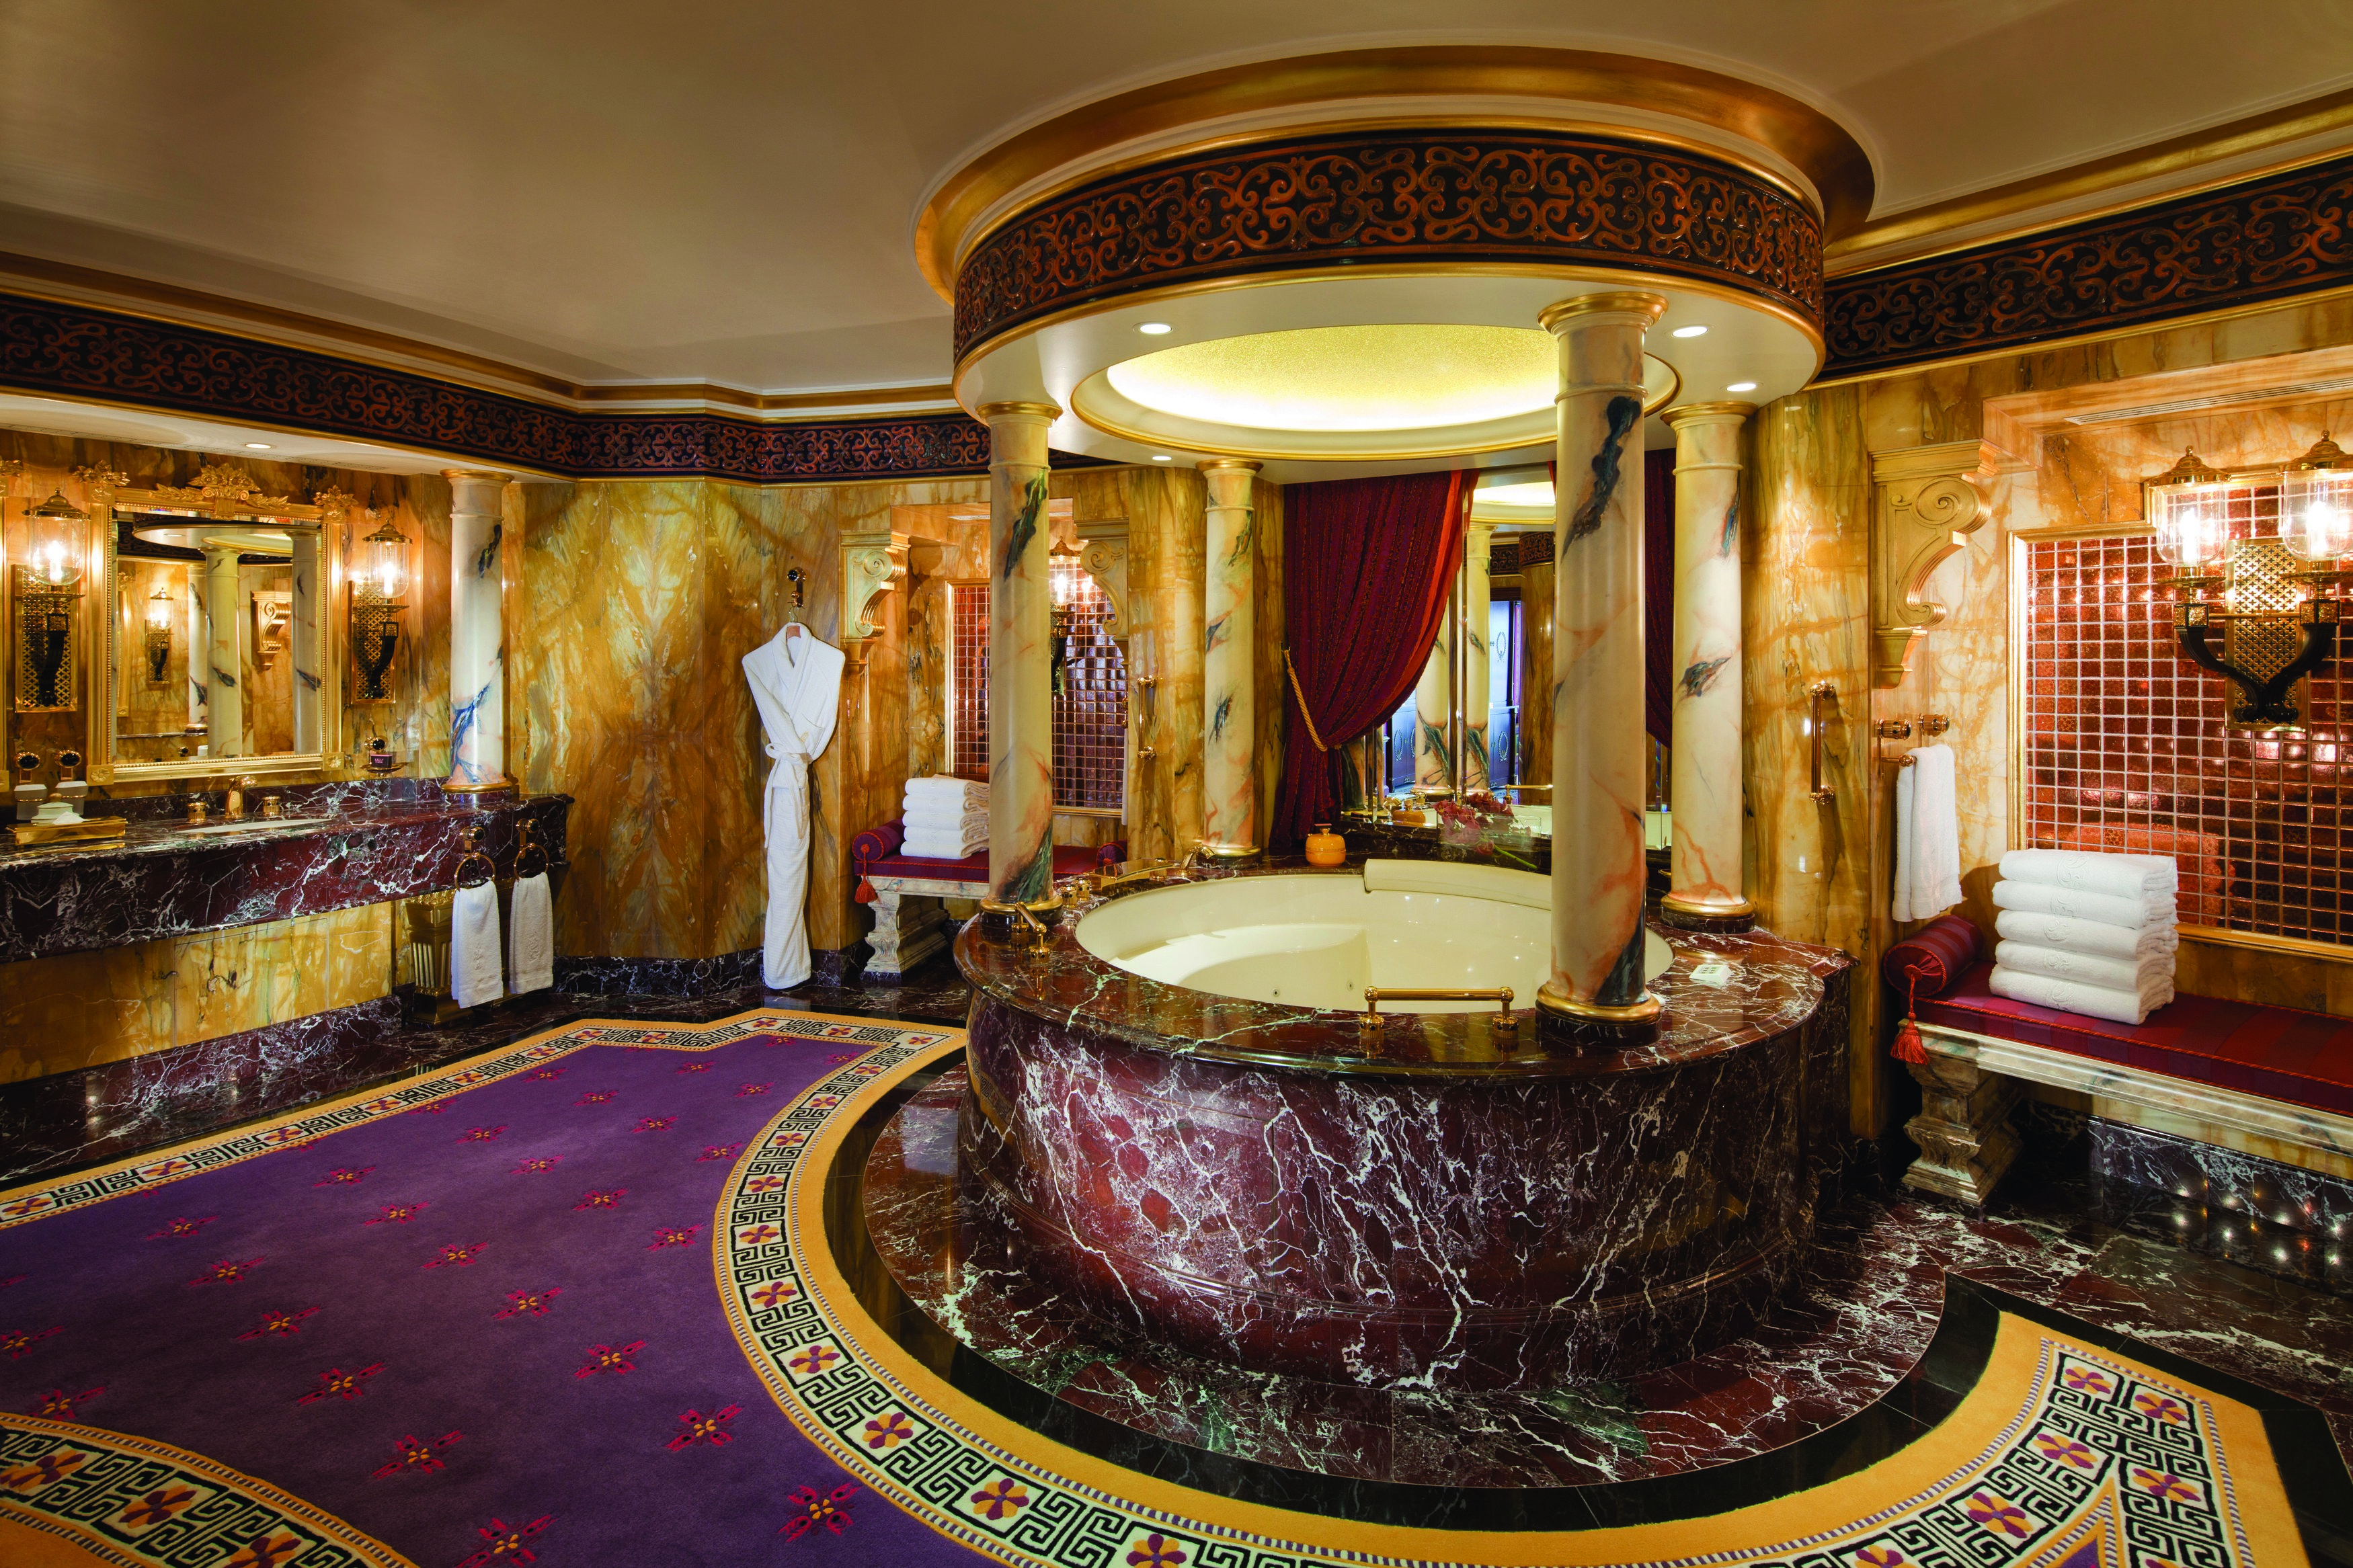 The Worlds Most Luxurious Hotel Bathrooms